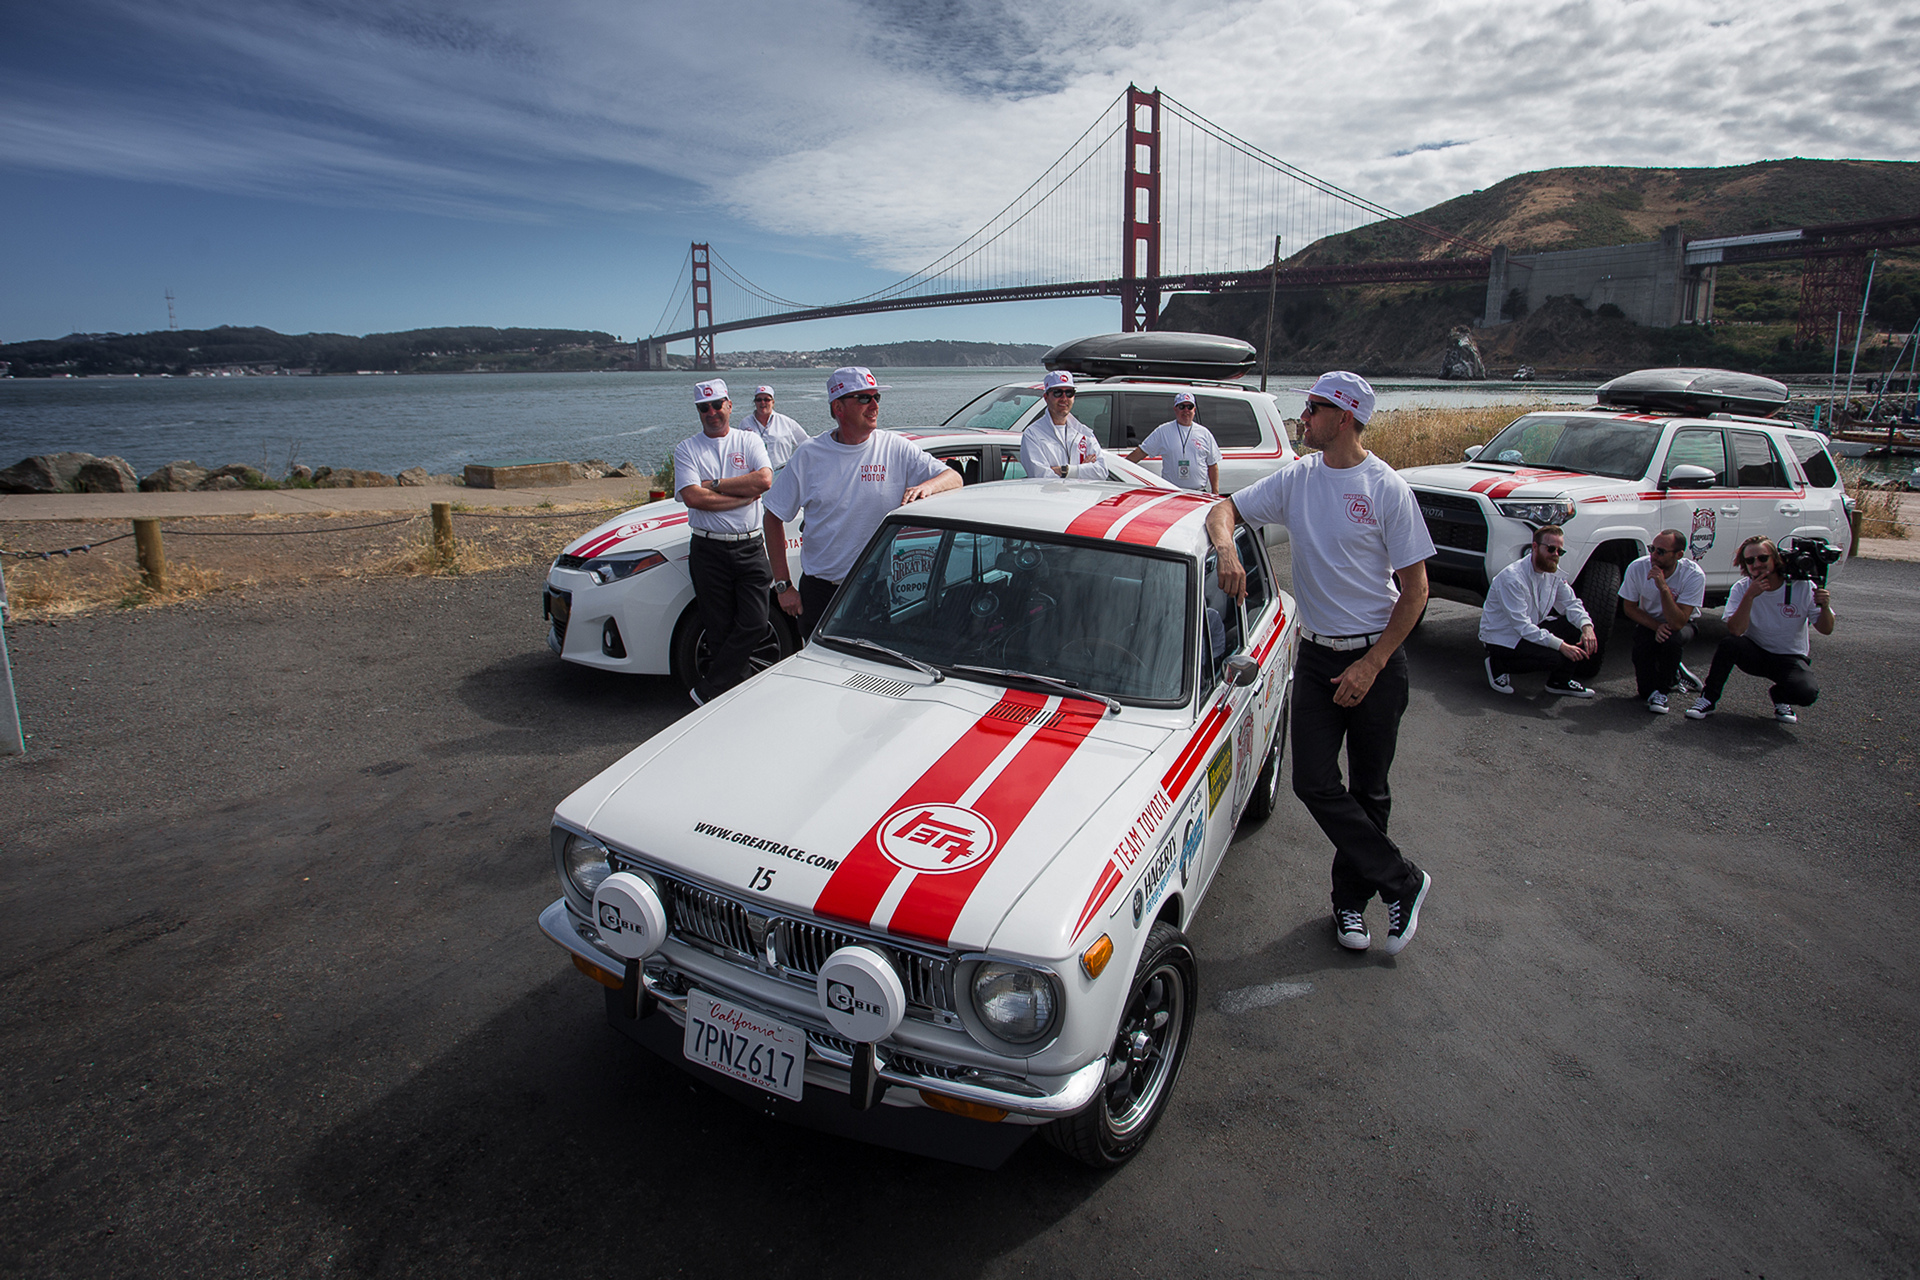 2016 Great Race - 1970 First Generation Toyota Corolla © Toyota Motor Corporation